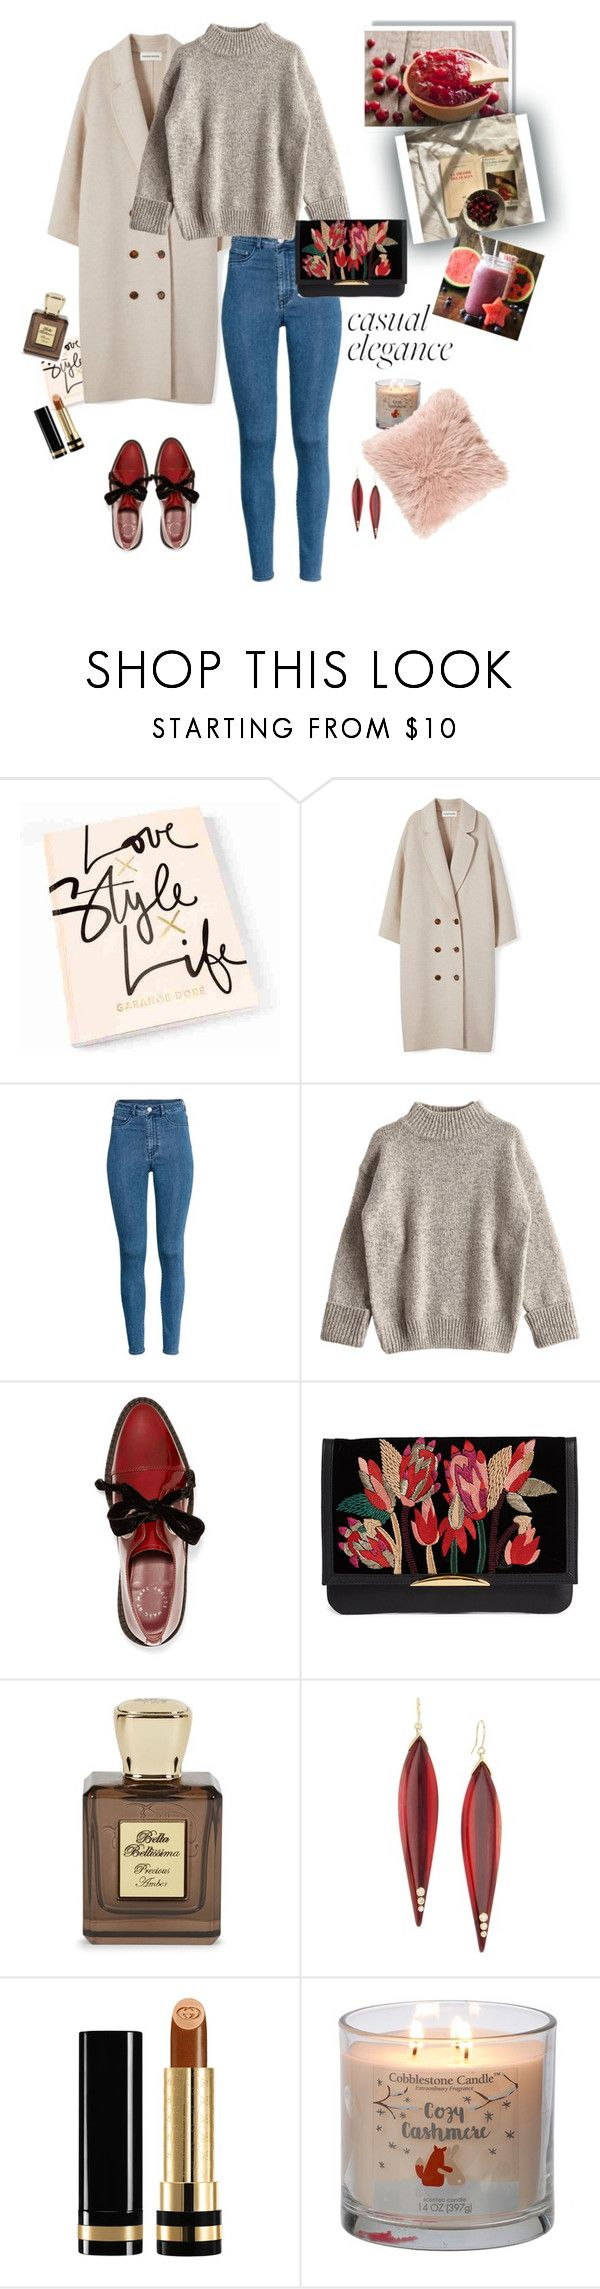 """""""Untitled #244"""" by kalashnikovanataly on Polyvore featuring Marc by Marc Jacobs, Lizzie Fortunato, Bella Bellissima, Mark Davis, Gucci and Surya"""